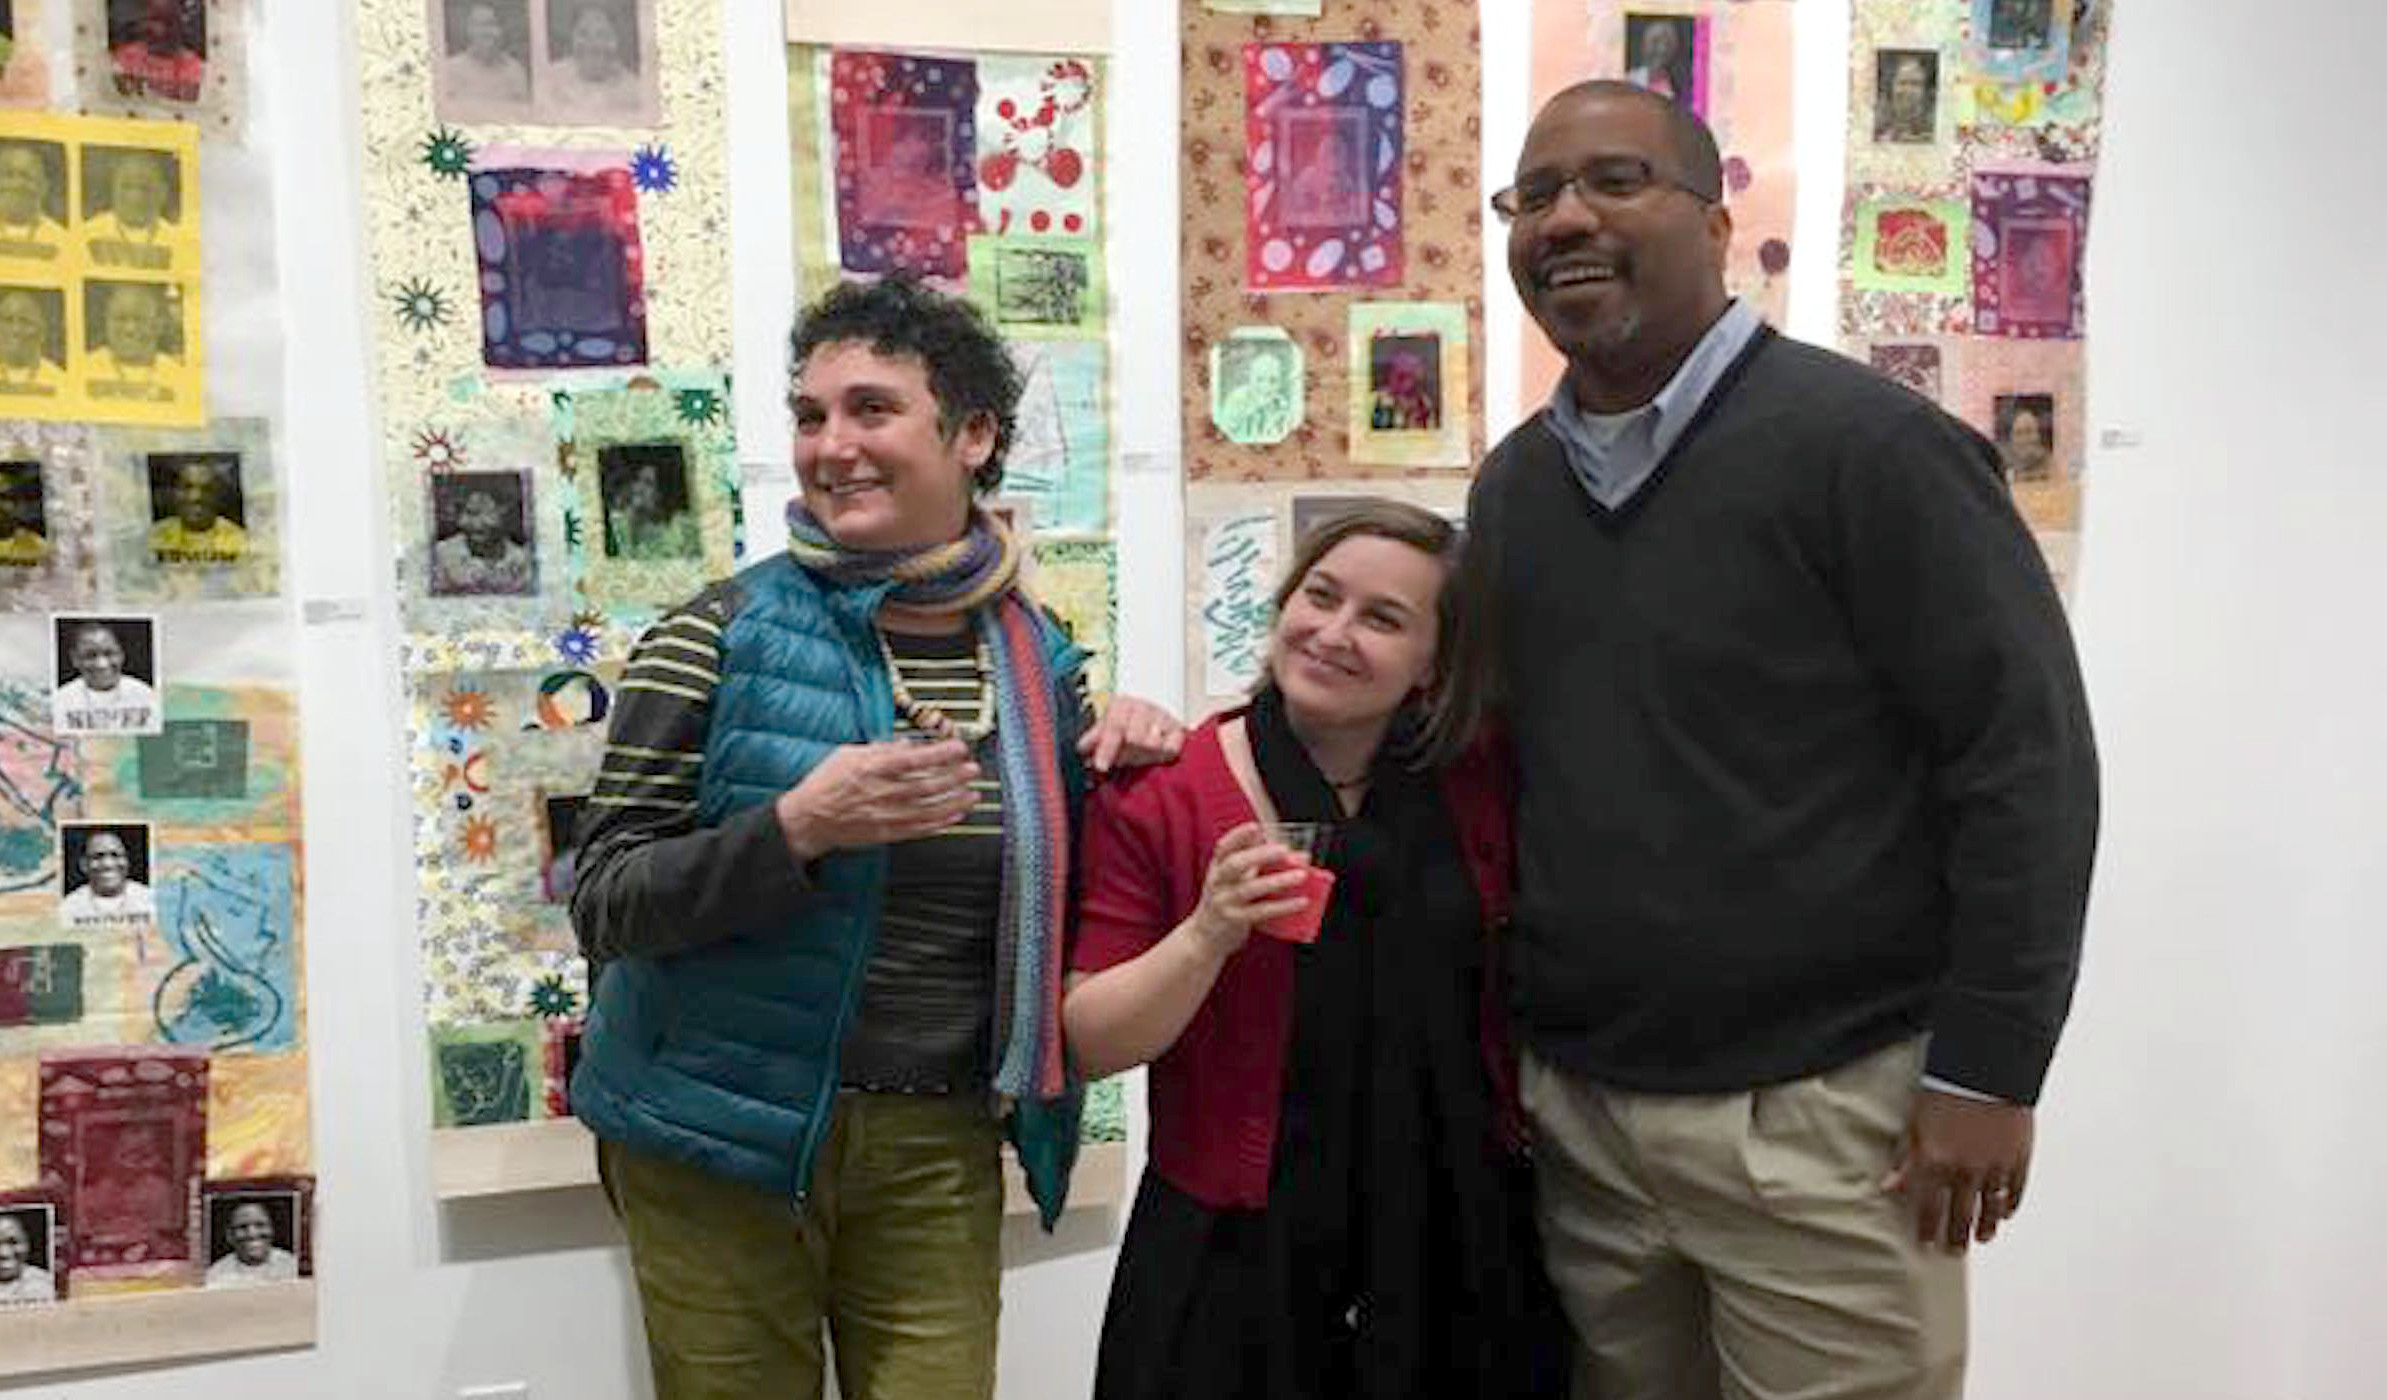 three people smiling holding drinks at an art gallery event